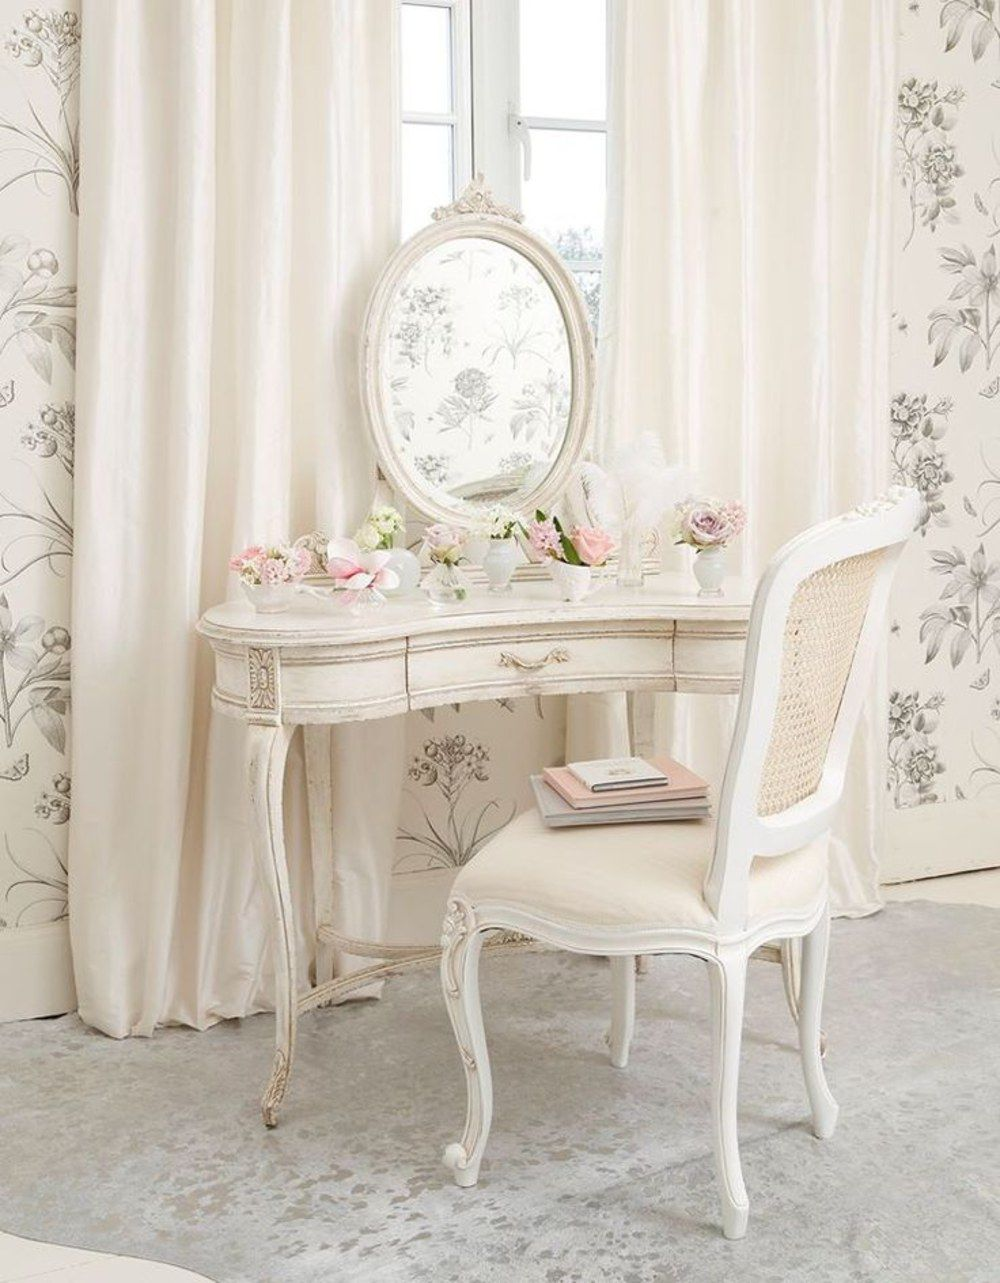 Deco 15 Coiffeuses Qui Nous Font Vraiment Rever Coiffeuse Shabby Chic Meubles Shabby Chic Commode Shabby Chic